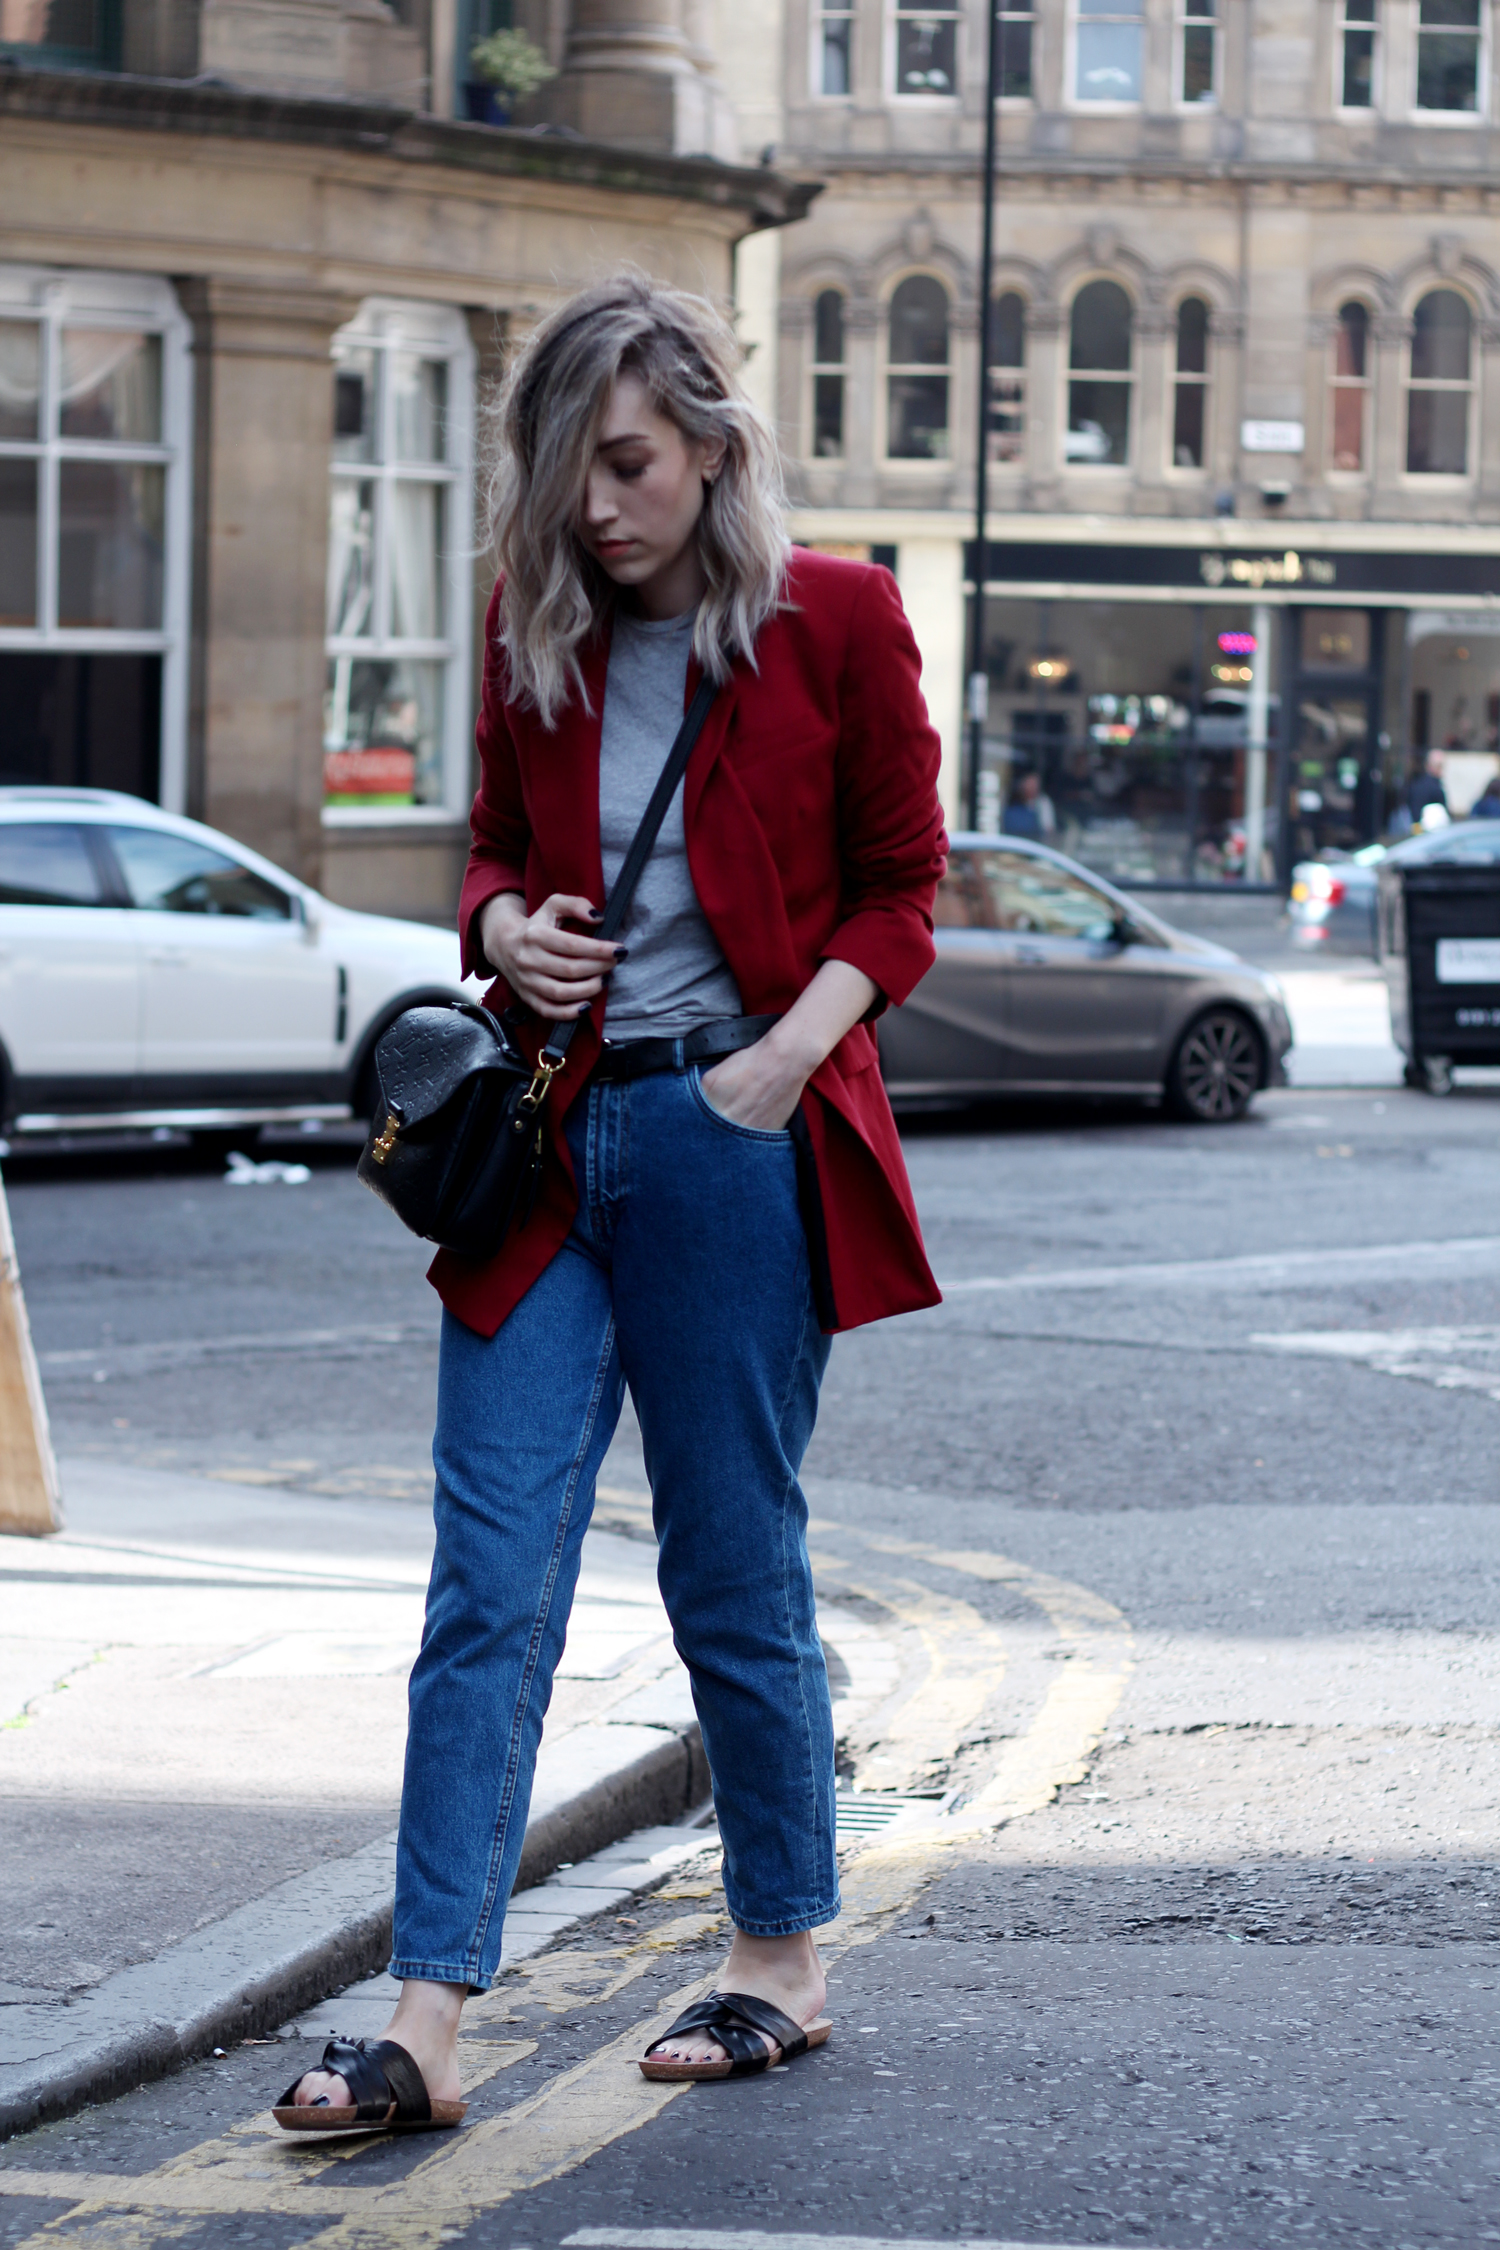 zara-red-blazer-mom-jeans-louis-mochette-metis